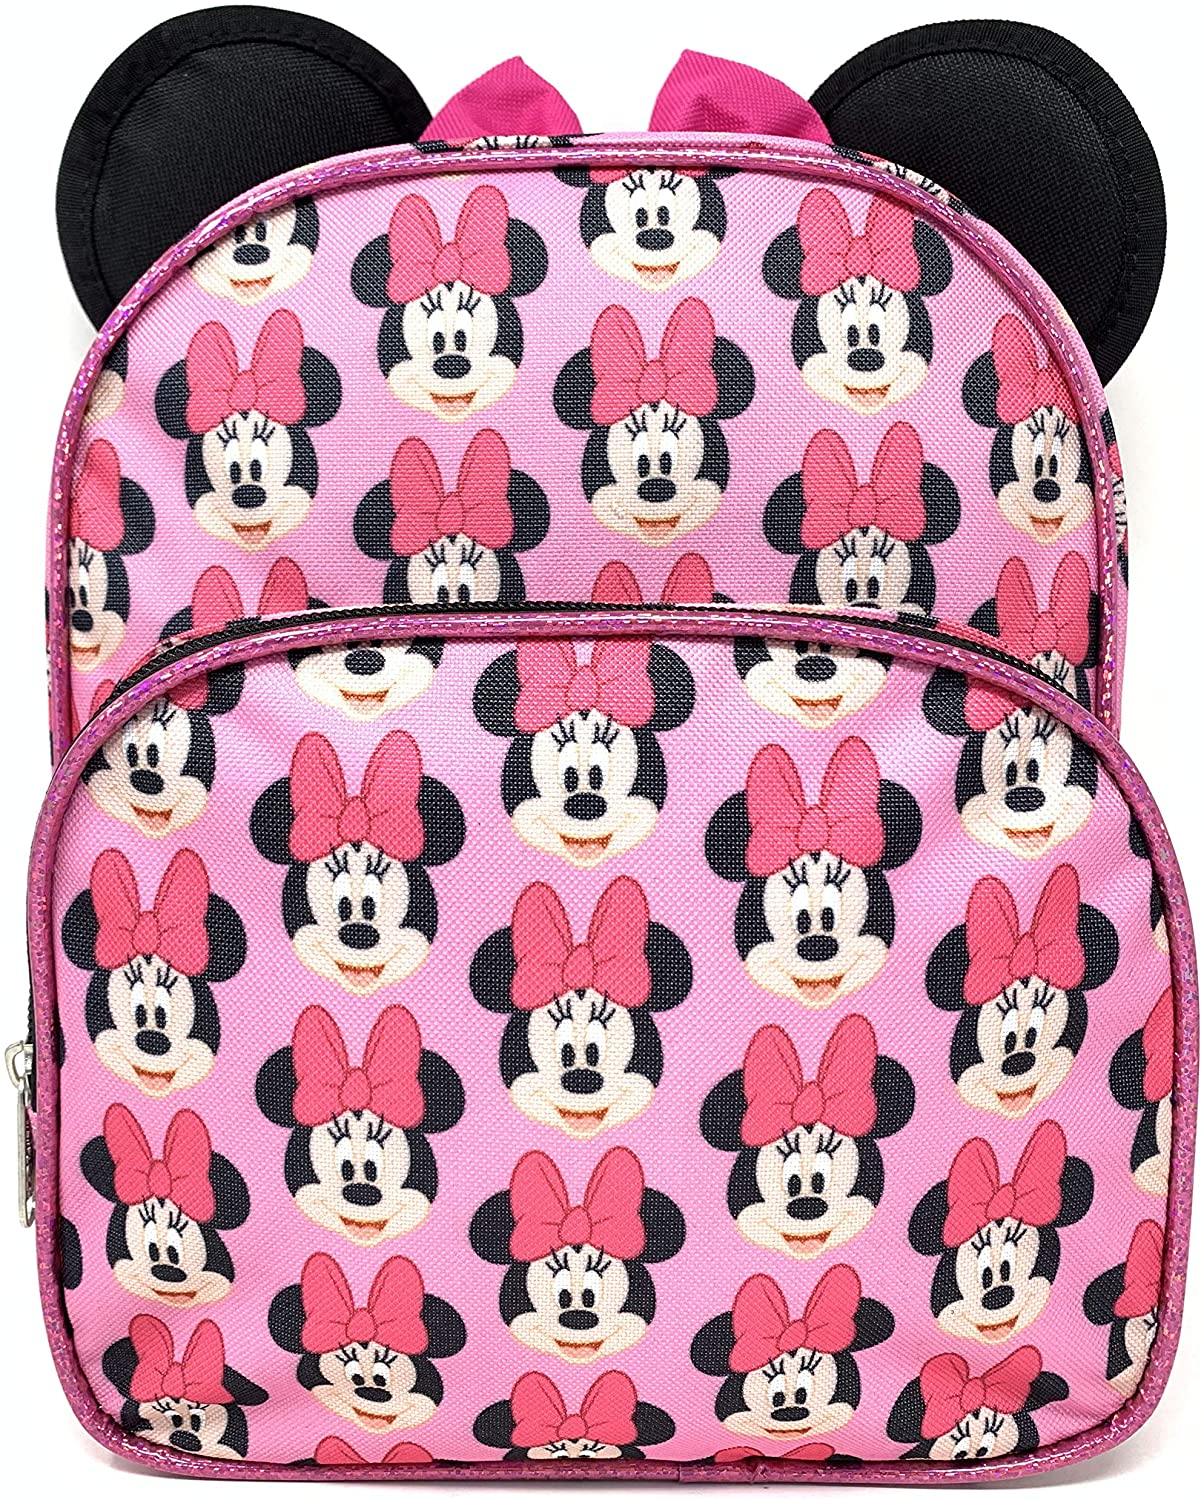 "Disney 3D Minnie Mouse 10"" All Over Mini Backpack"